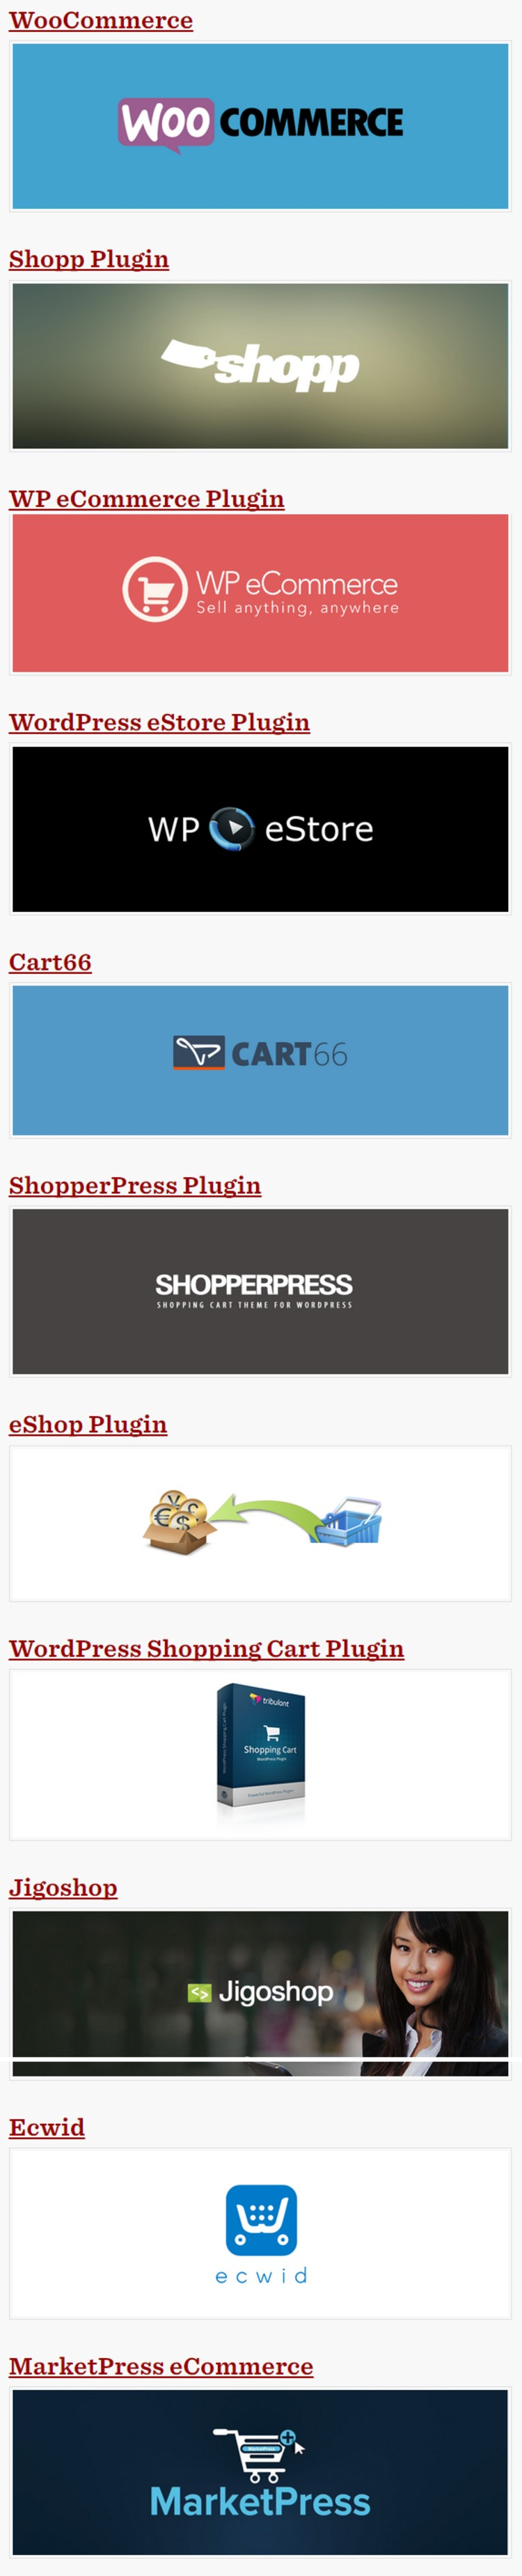 Top 10 WordPress Plugins for Adding Ecommerce to Your Site - Speckyboy   The Marketing Technology Alert   Scoop.it